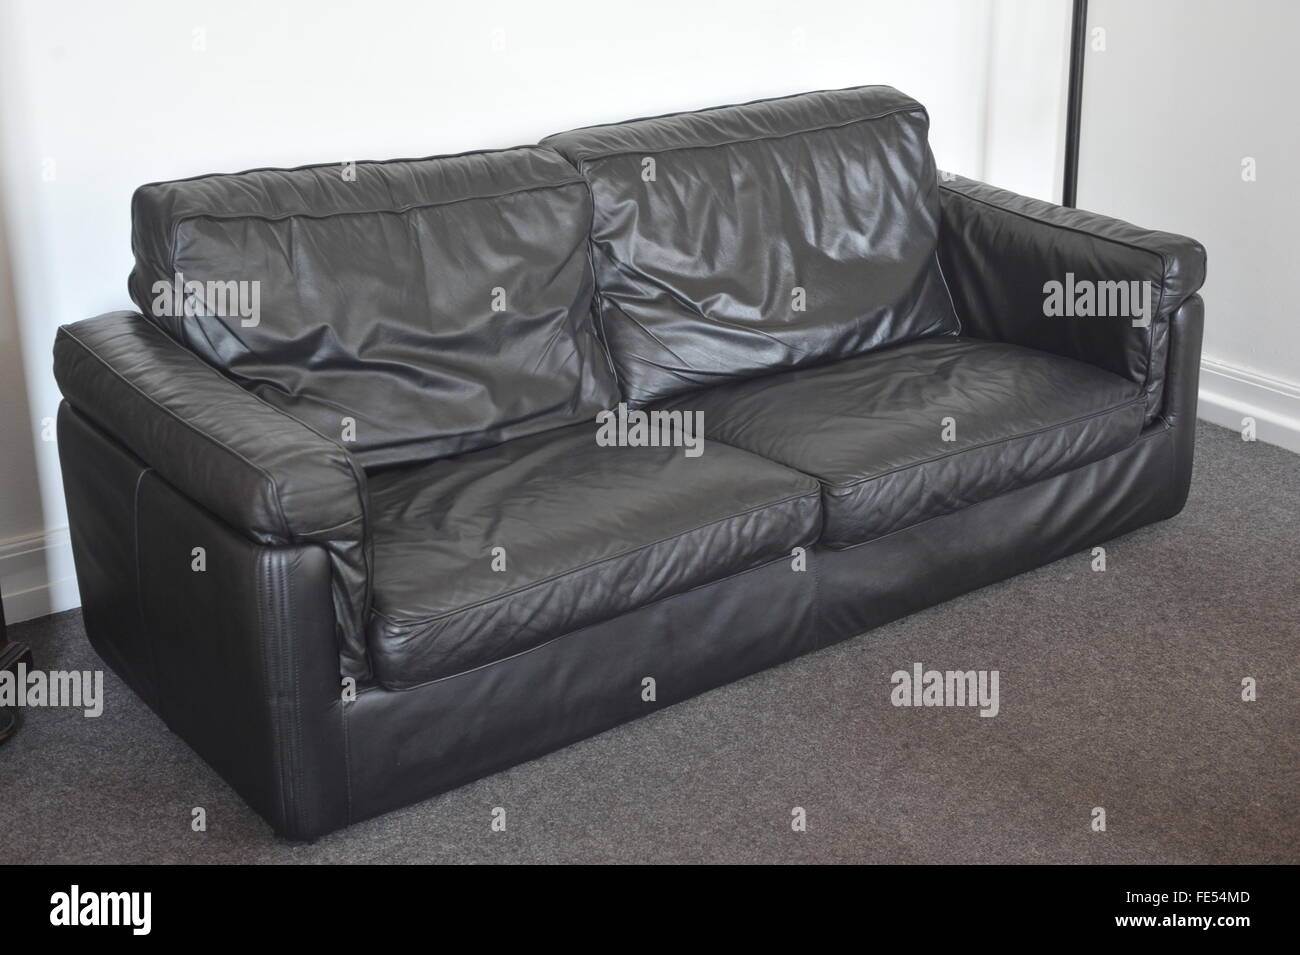 used black leather sofa, furniture, lounge Stock Photo: 94770493 - Alamy